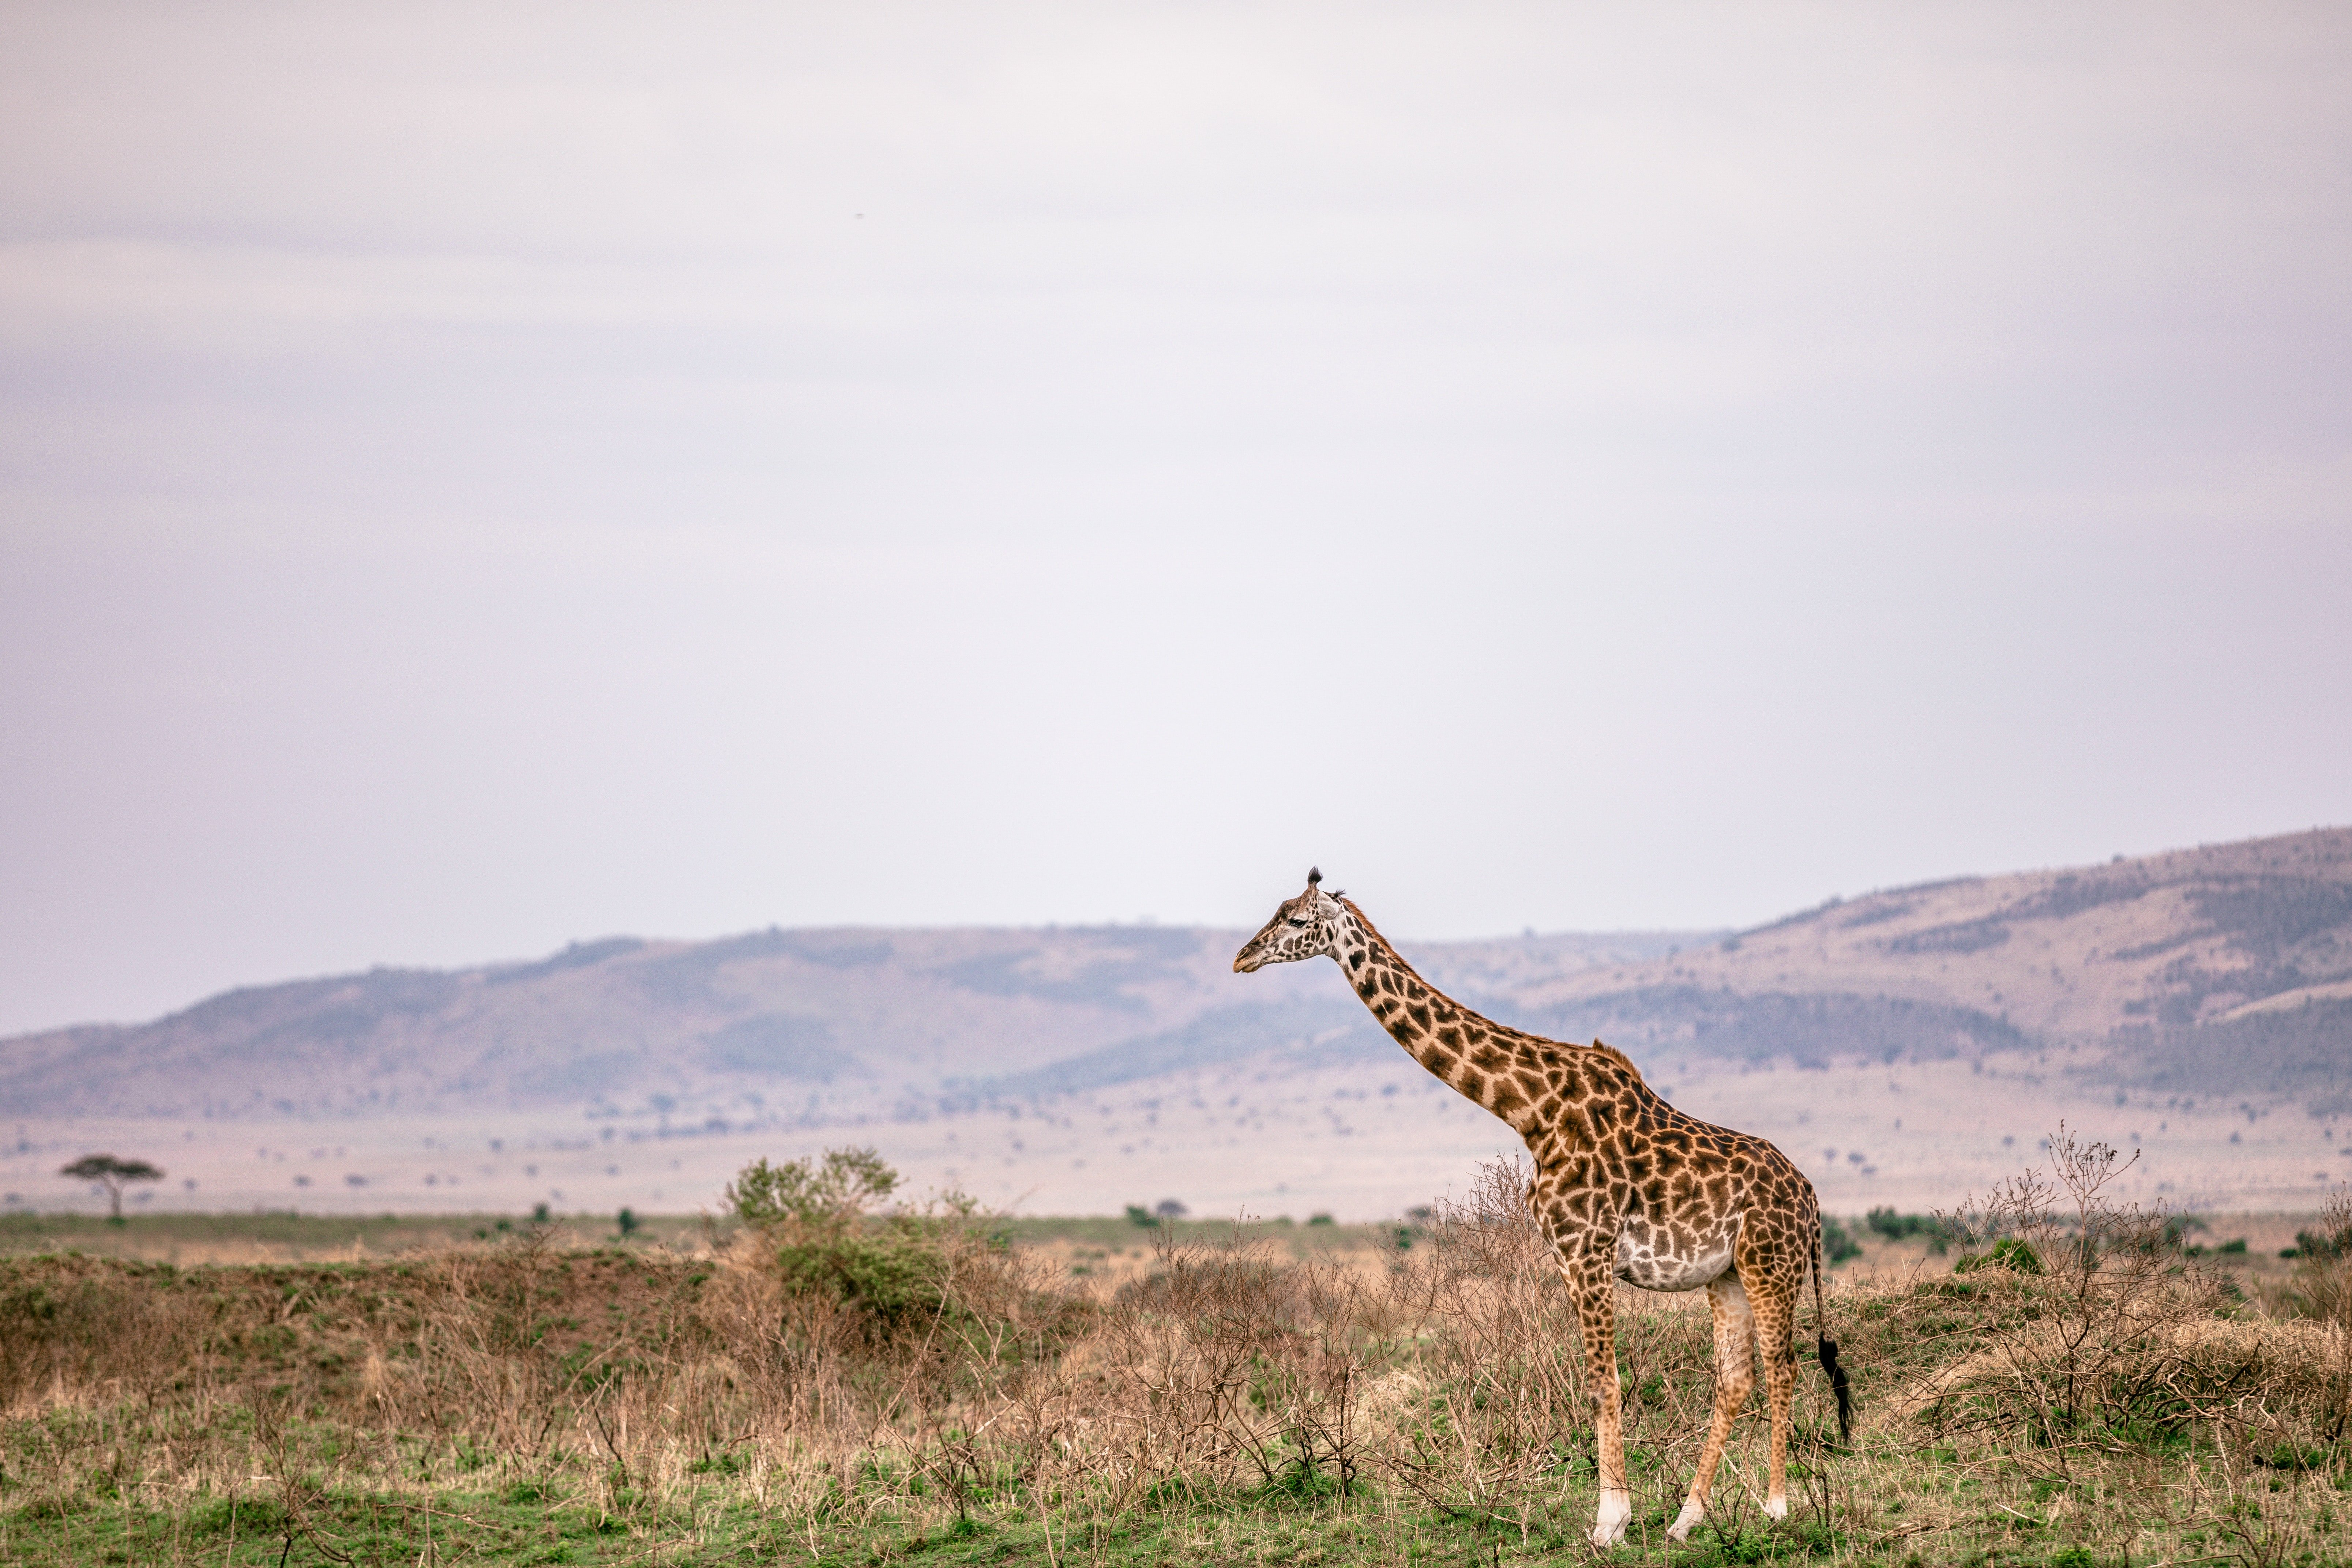 Pictured - An image of a giraffe standing on a grassy meadow | Source: Pexels